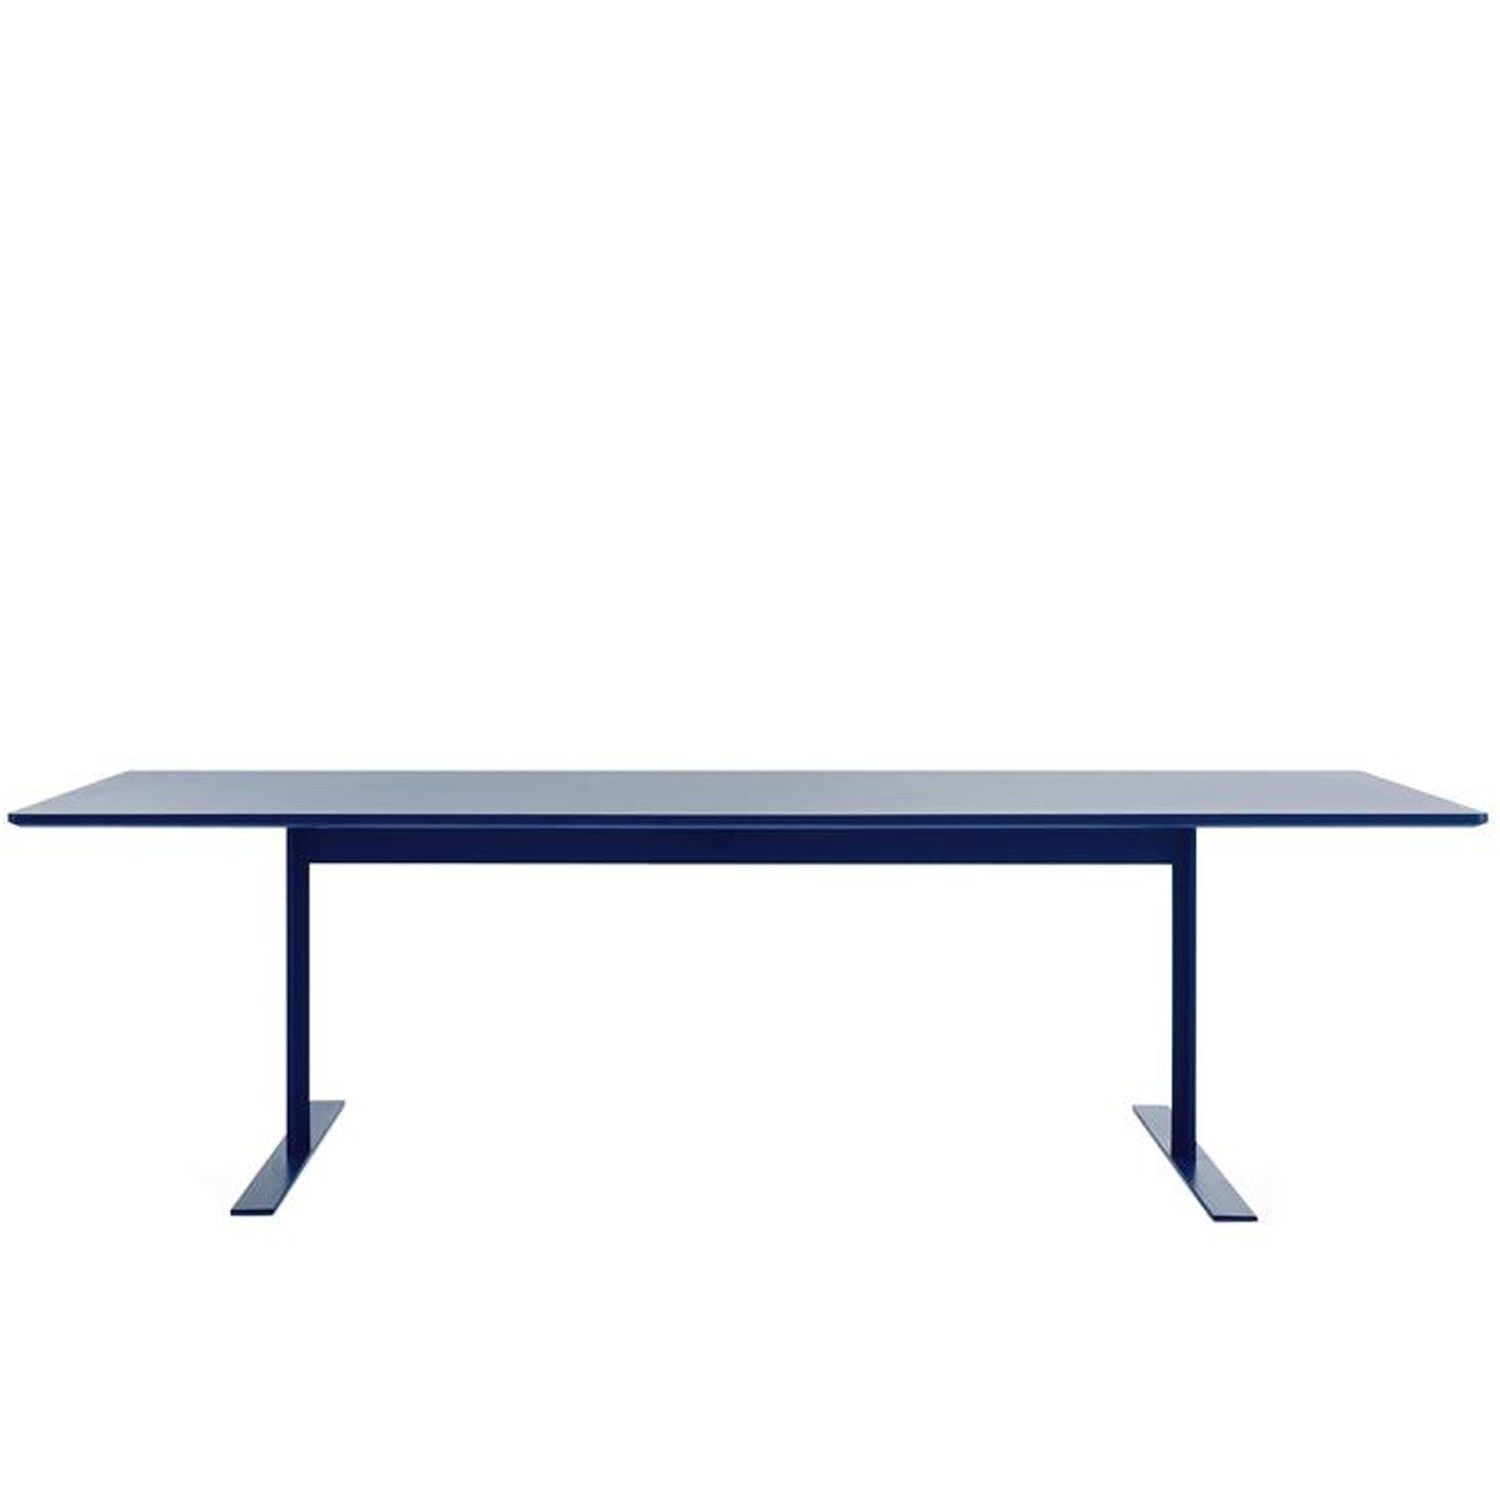 Luxor Table by Cappellini